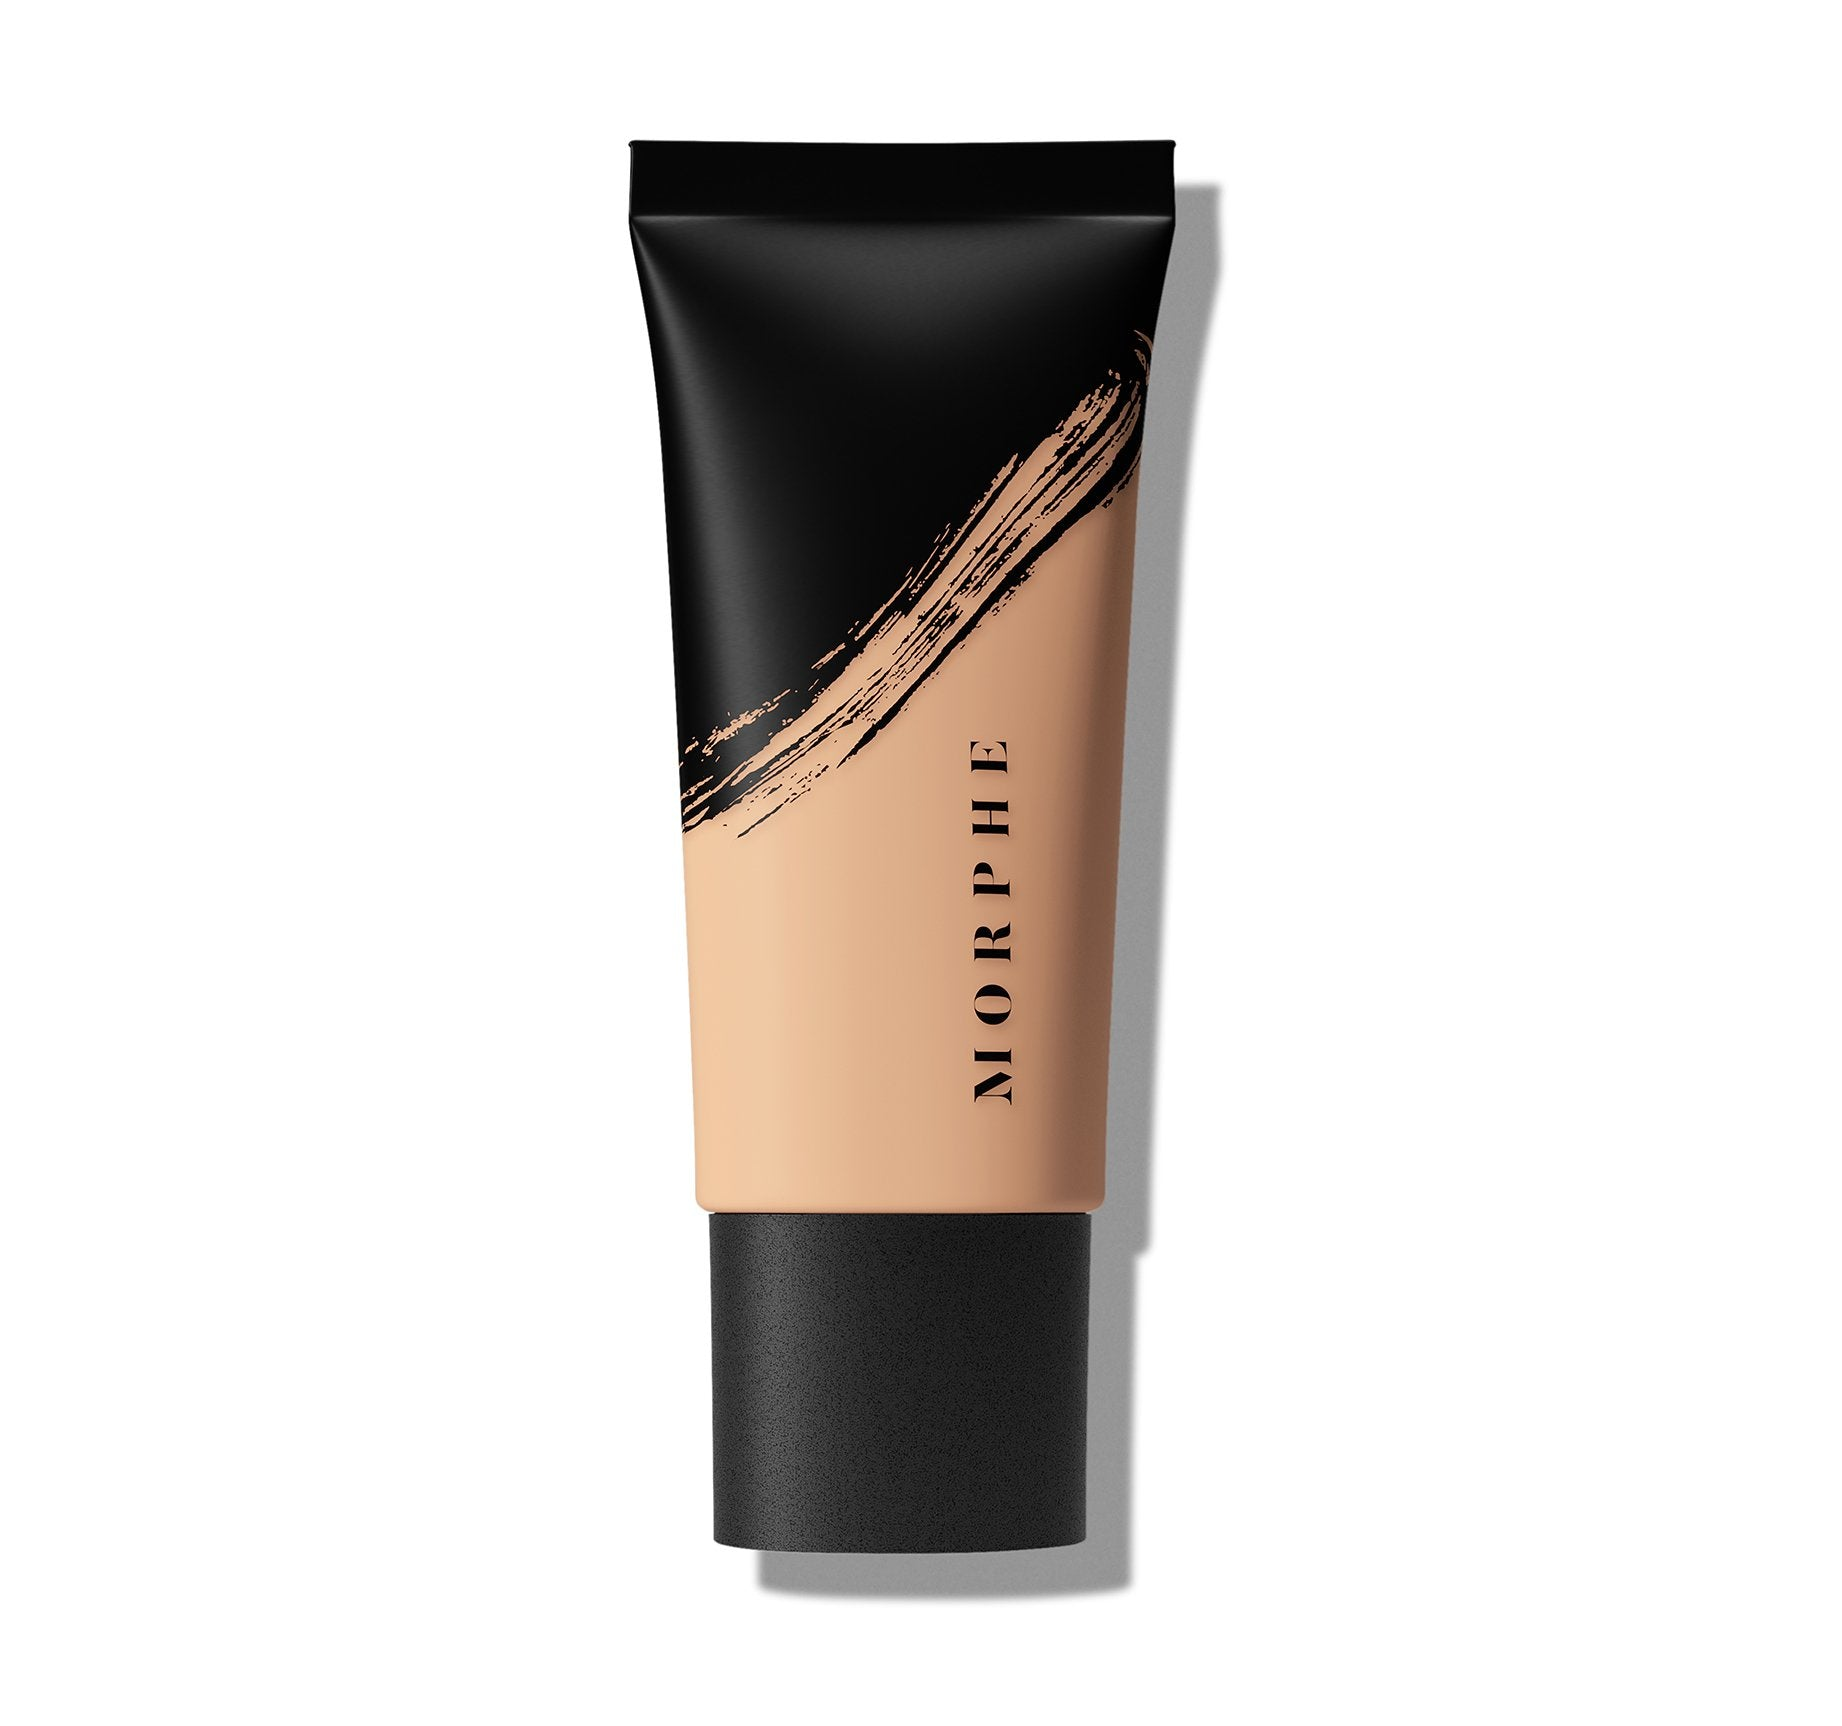 FLUIDITY FULL-COVERAGE FOUNDATION - F2.10, view larger image